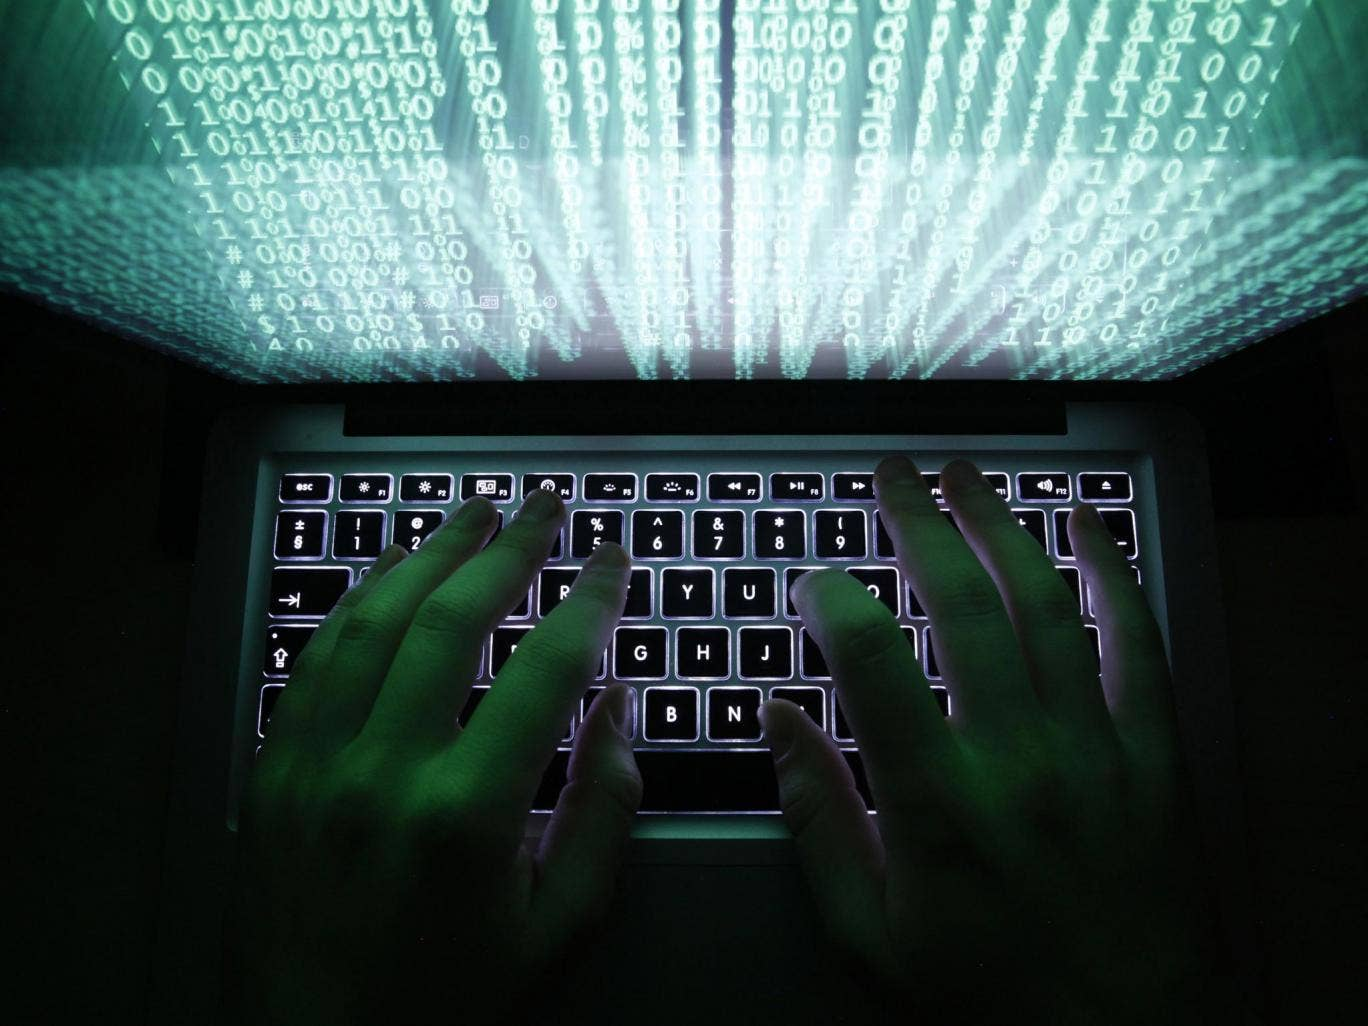 Banks fear imminent Russian cyber-attack